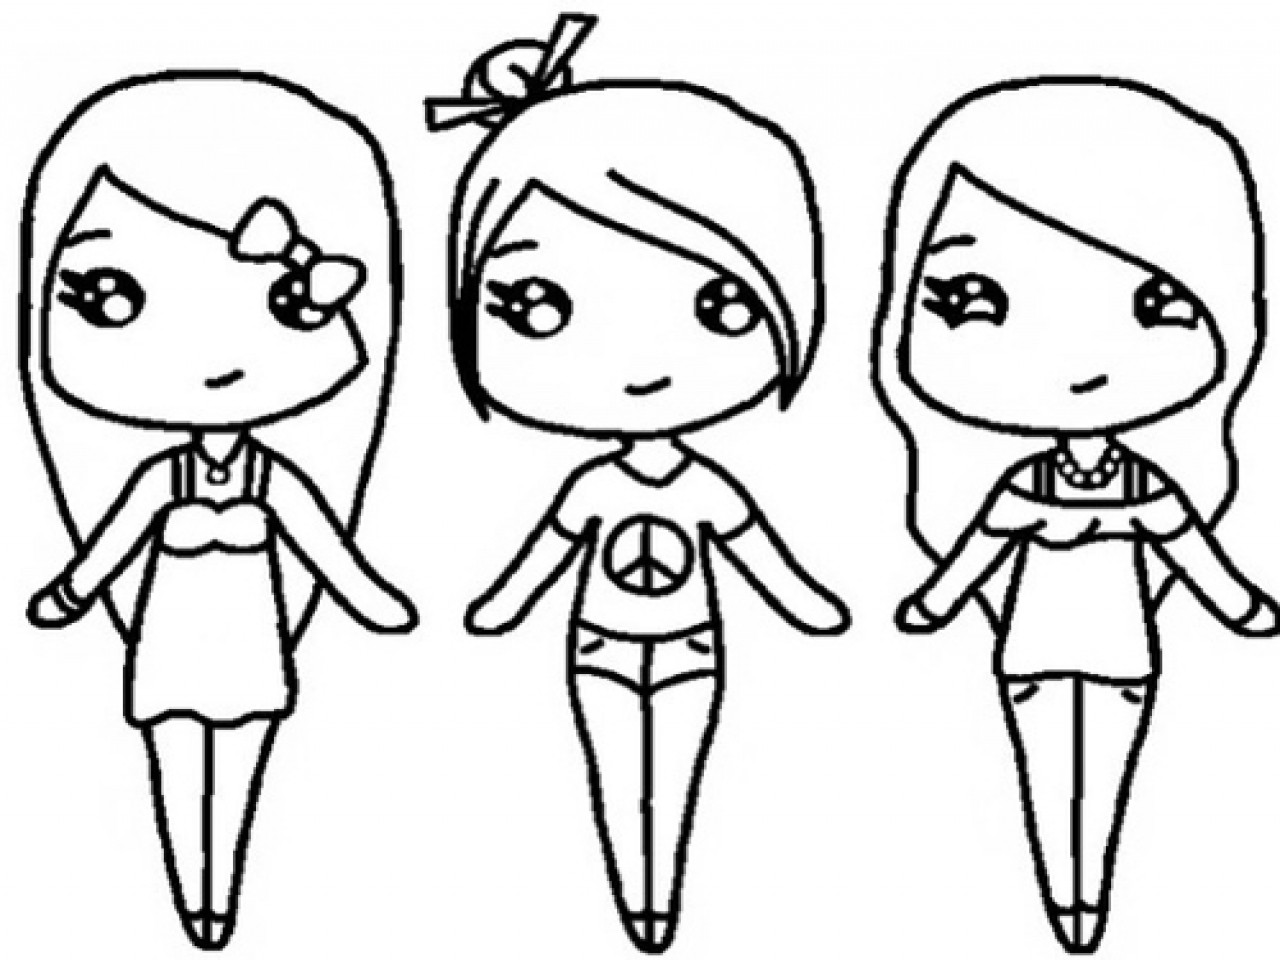 Friendship Coloring Pages For Girls  Bff Coloring Pages For Girls Best Friend Chibi Stencils